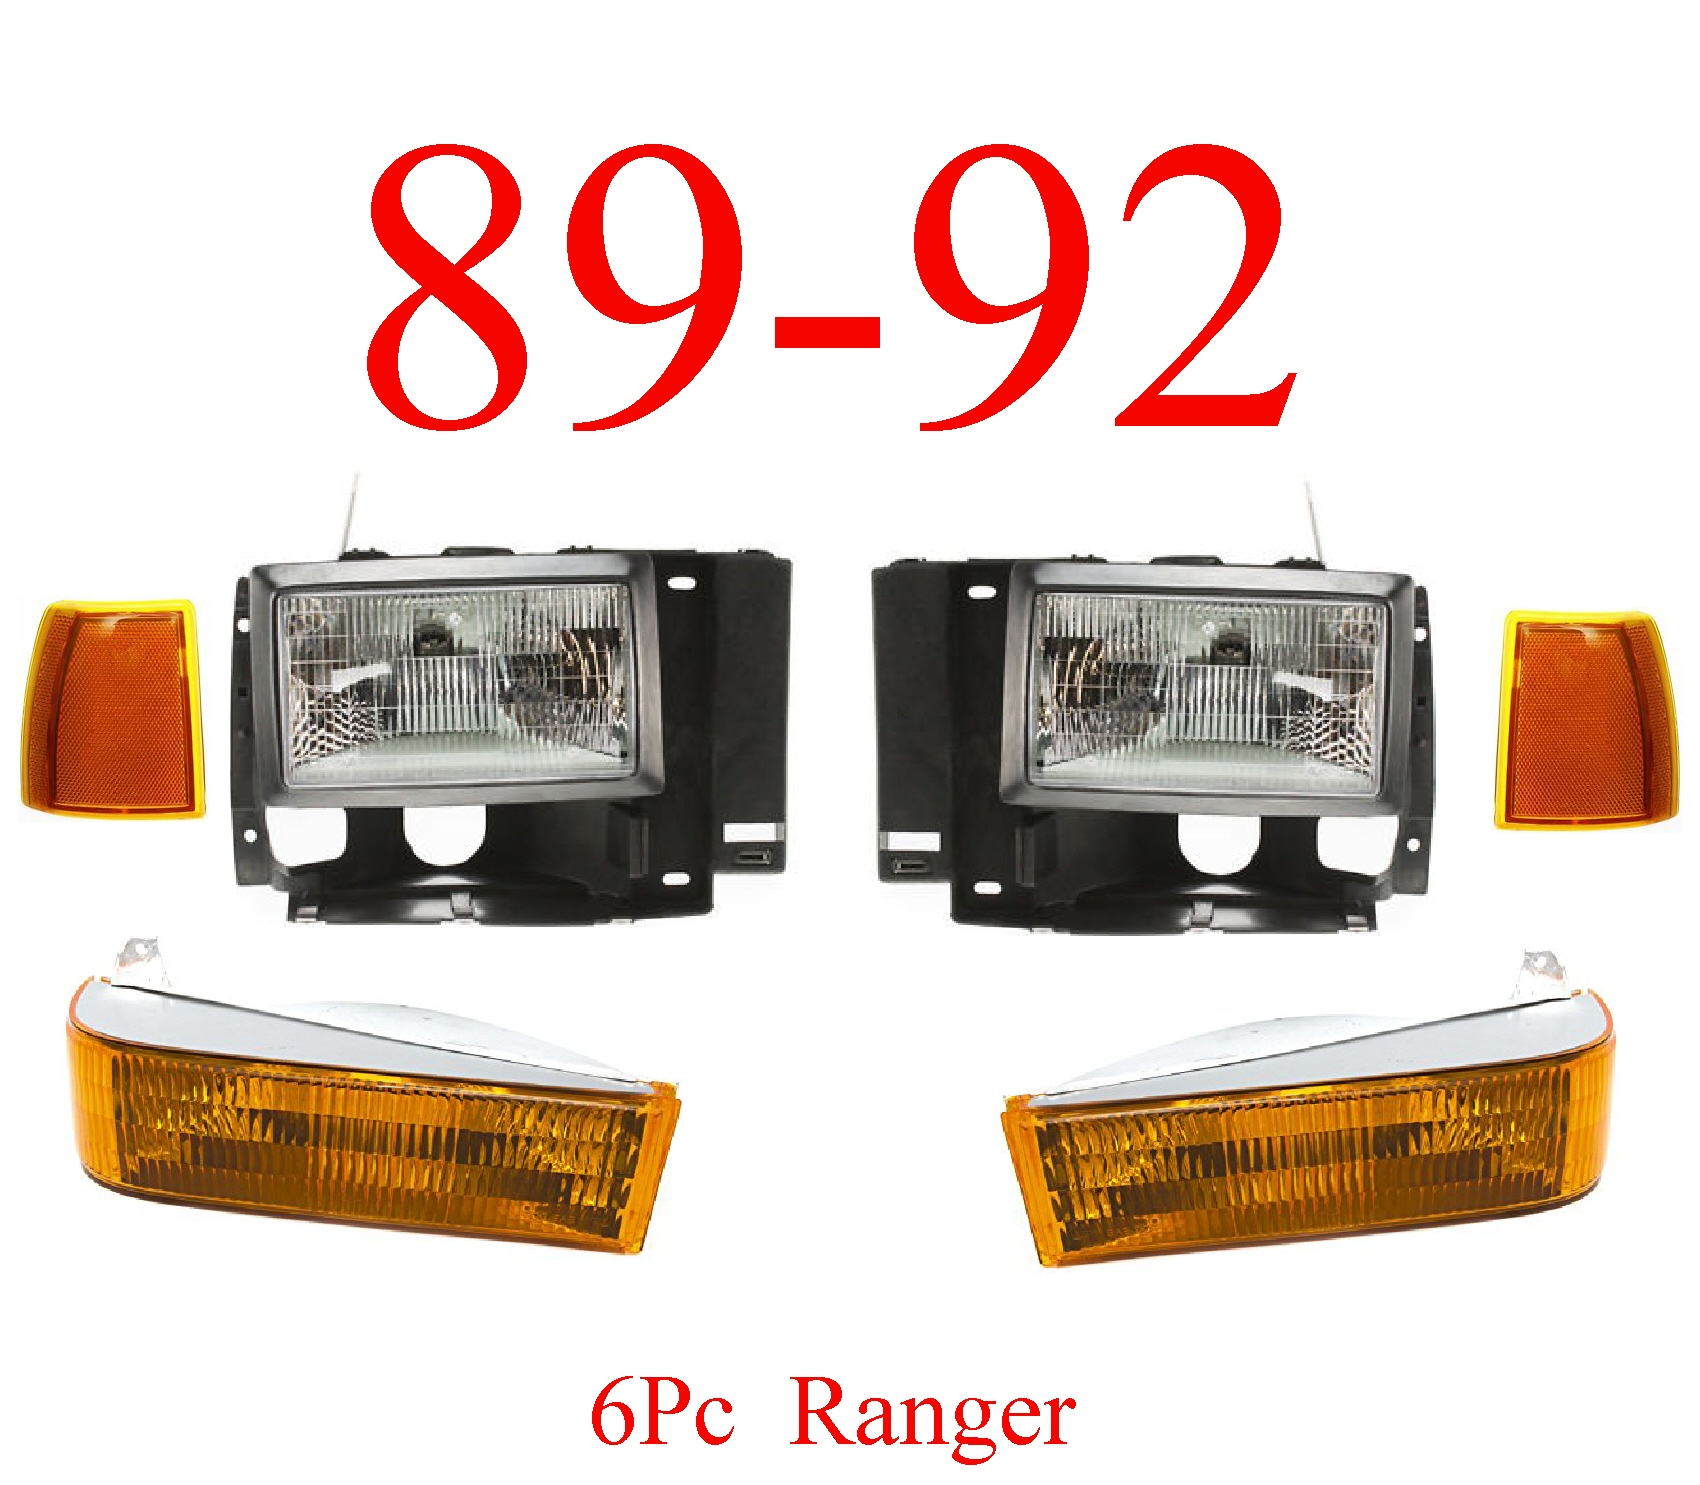 89-92 Ranger & Bronco II 6Pc Head Light Kit